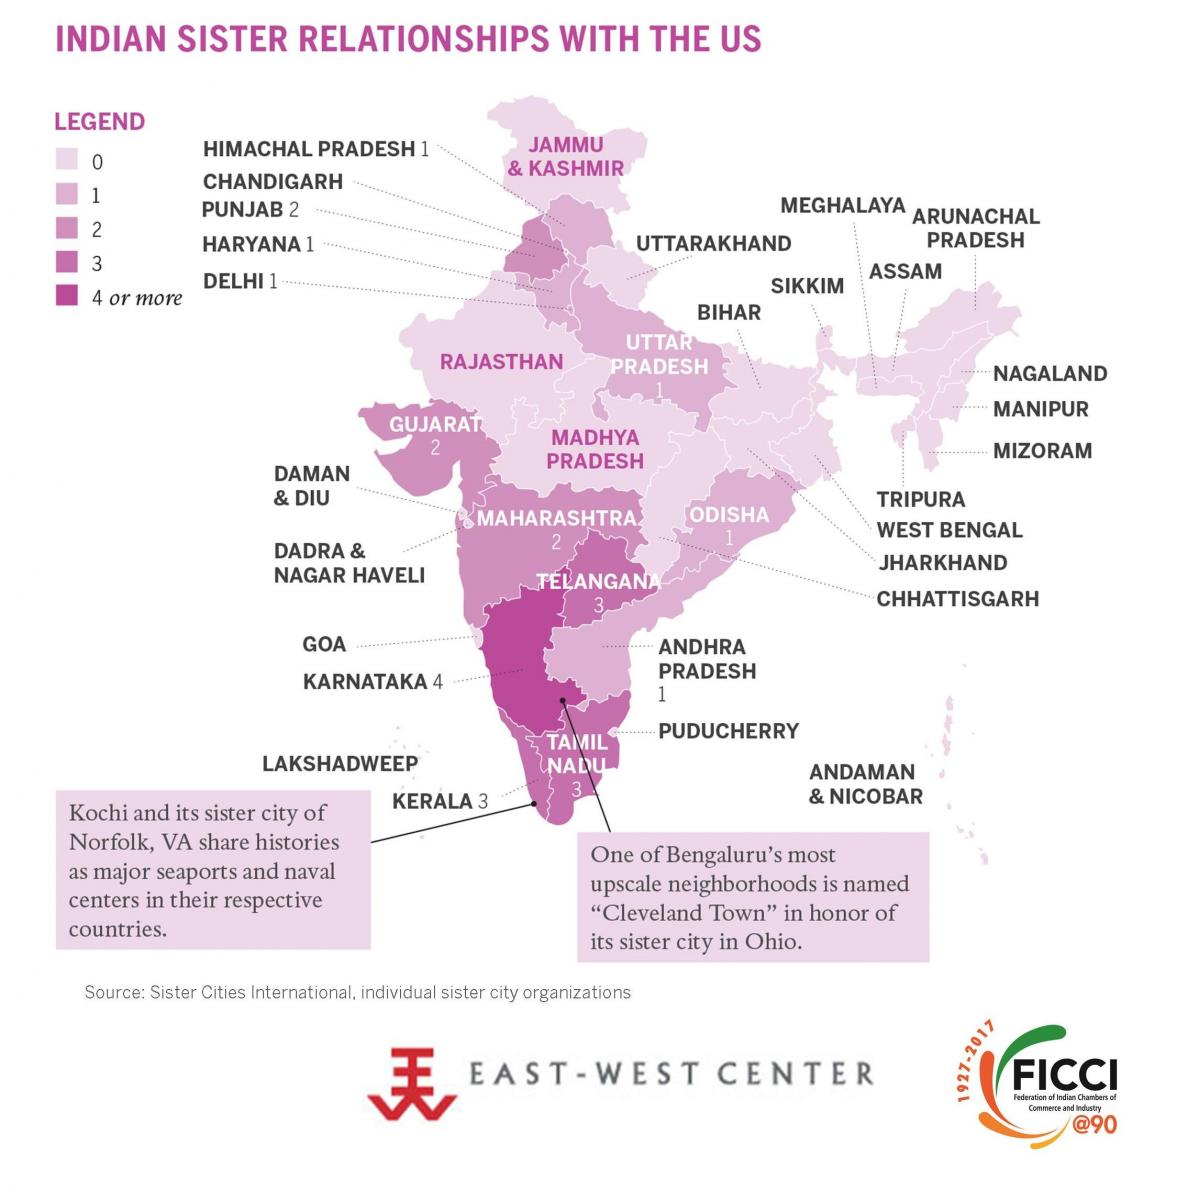 Indian Sister Relationships with the US